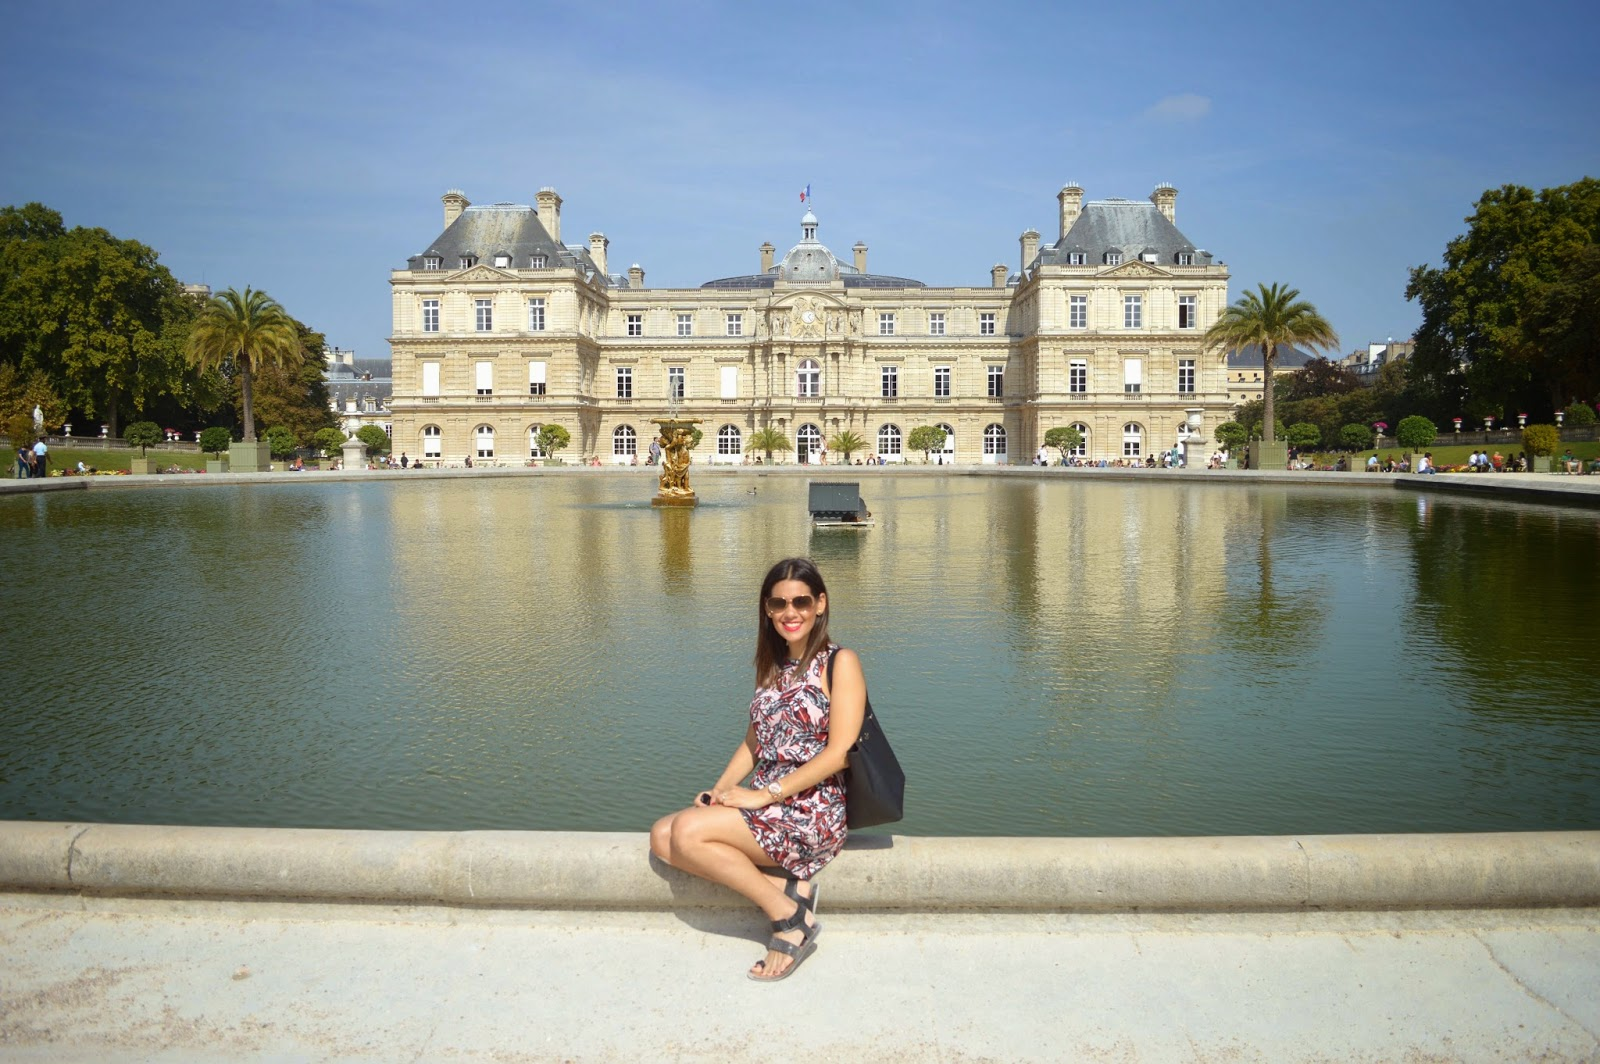 Marifer at the fountain in front of the Luxembourg Palace.